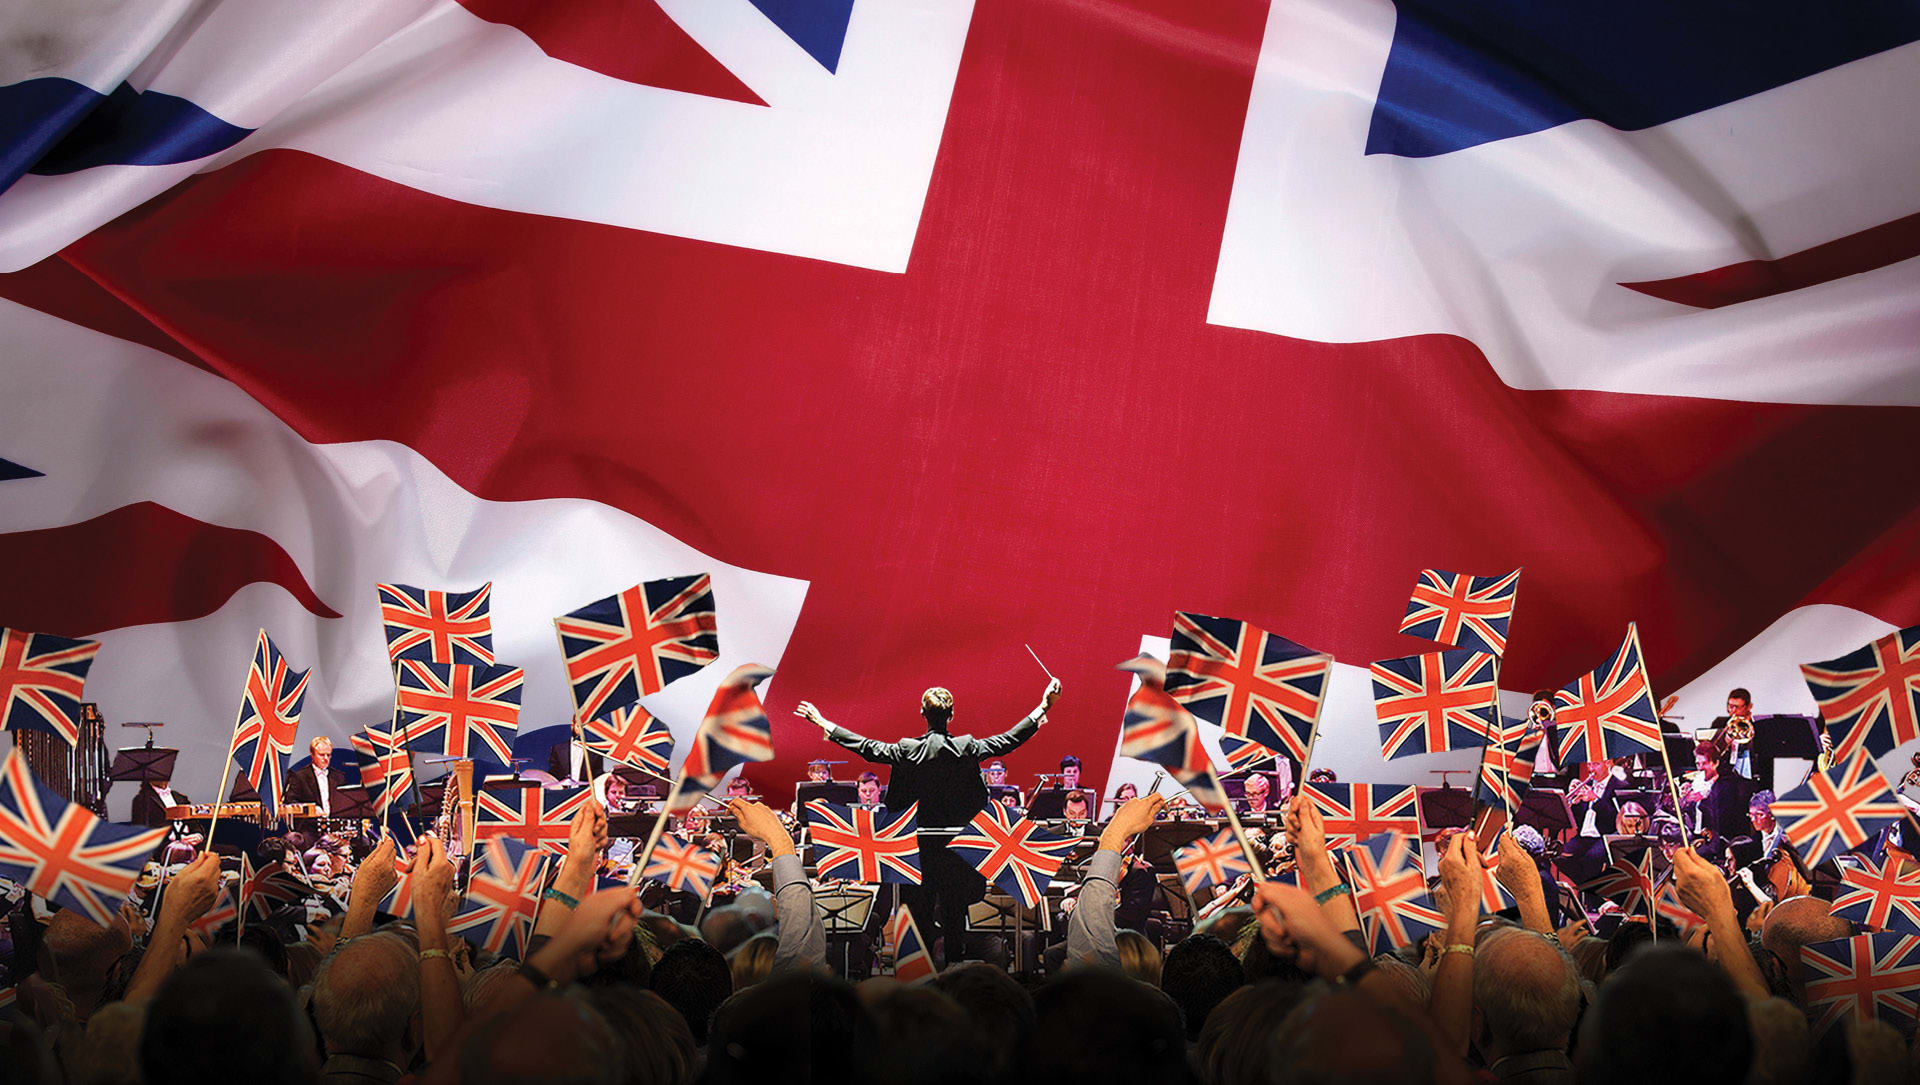 The Last of the Summer Proms